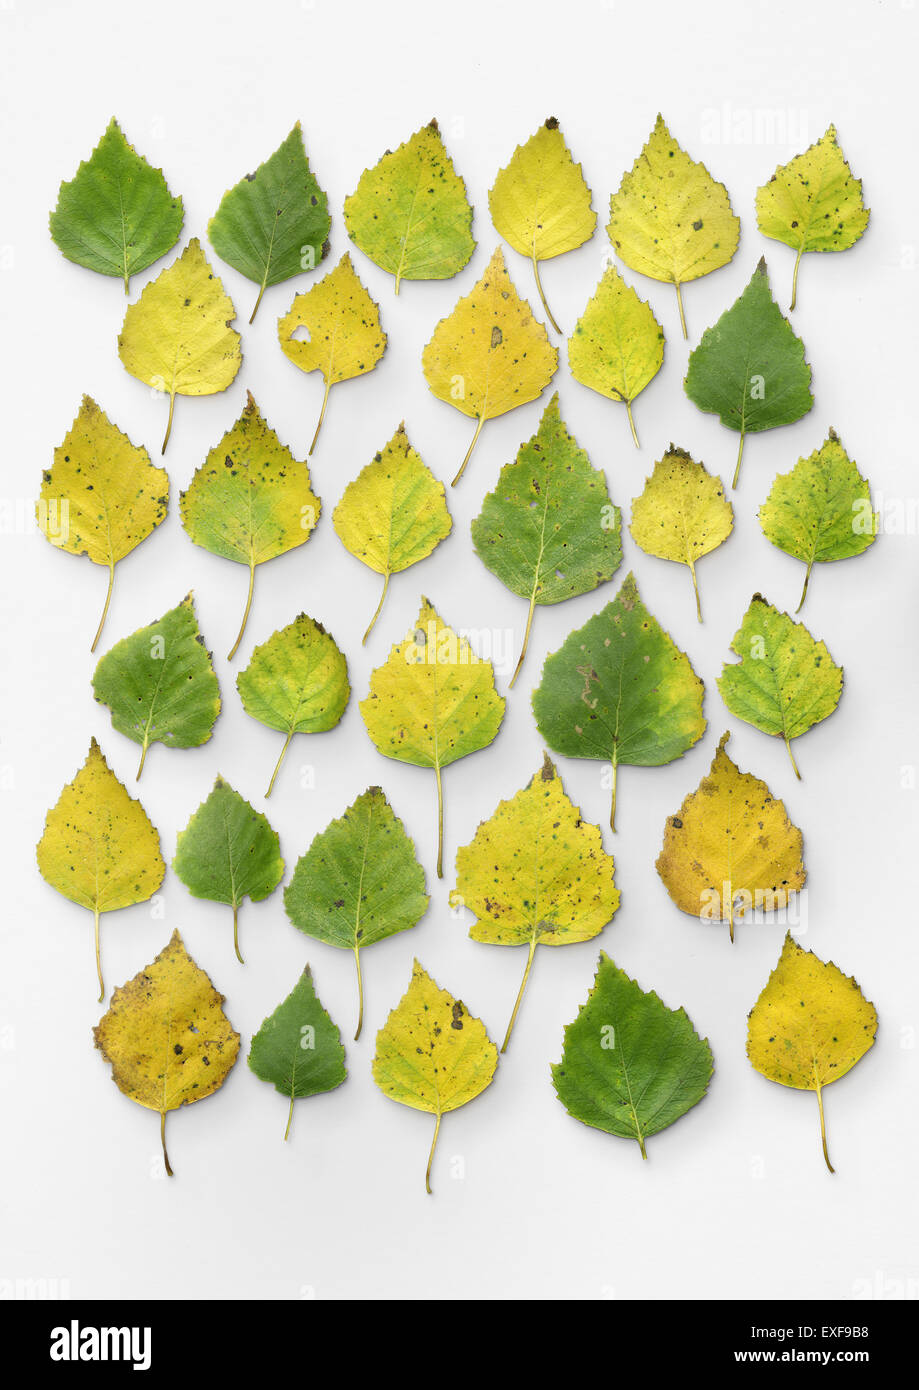 Silver birch leaves - Stock Image